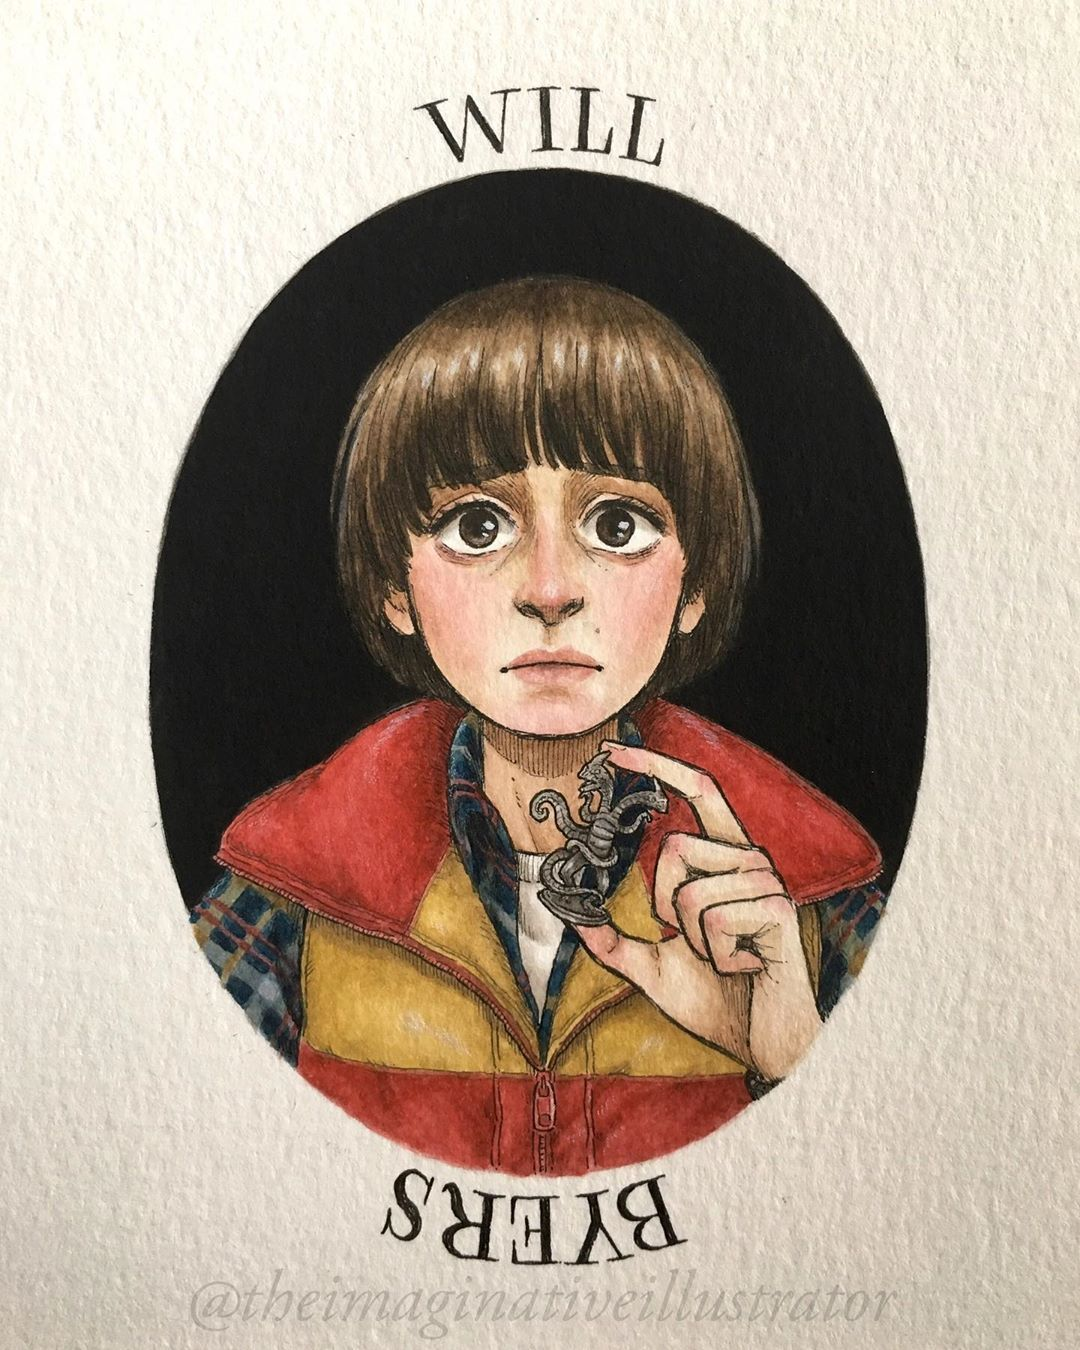 Stranger Things Will Byers By Melody Howe Theimaginativeillustrator Noah Schnapp Seaso Stranger Things Poster Stranger Things Art Stranger Things Characters